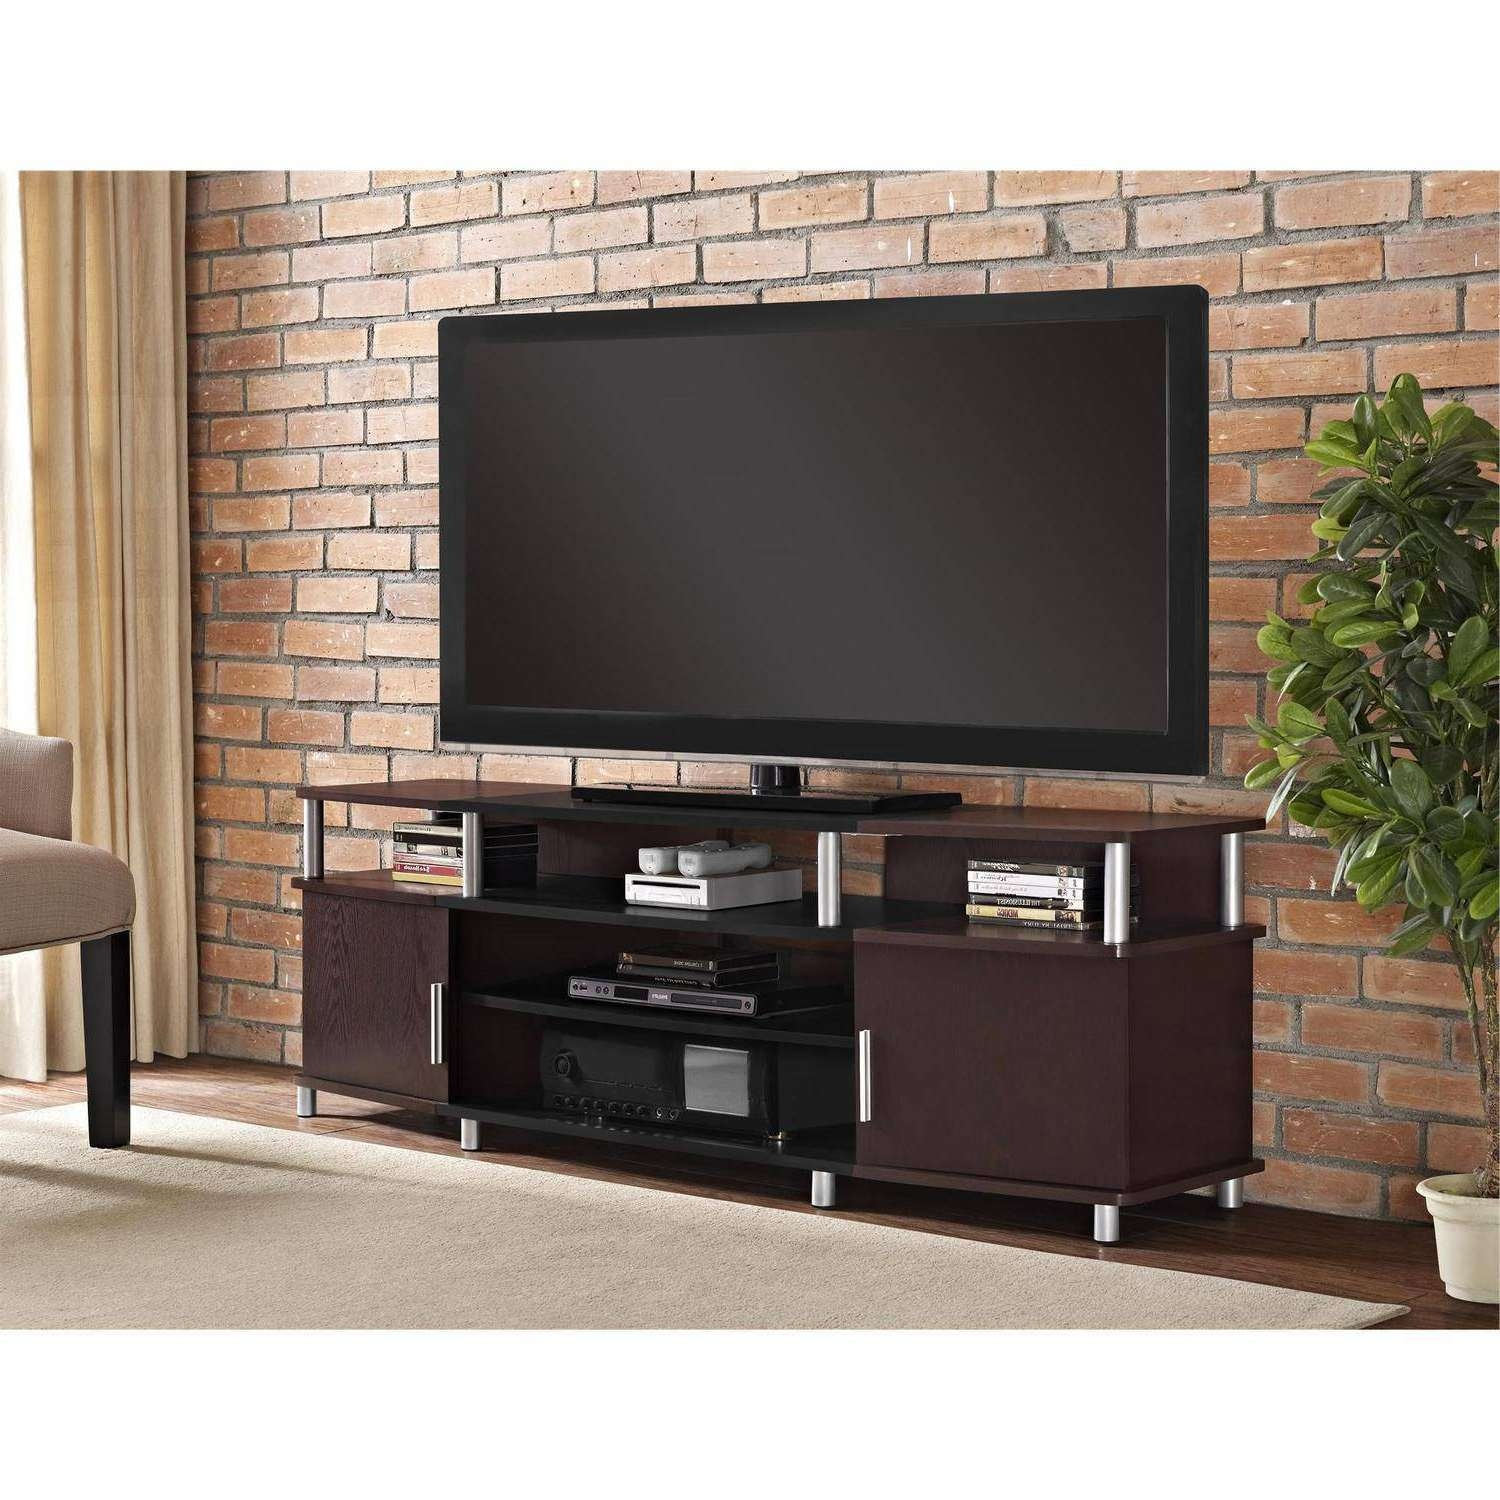 Tv Stands & Entertainment Centers – Walmart With Regard To Black Tv Stands With Drawers (View 12 of 15)